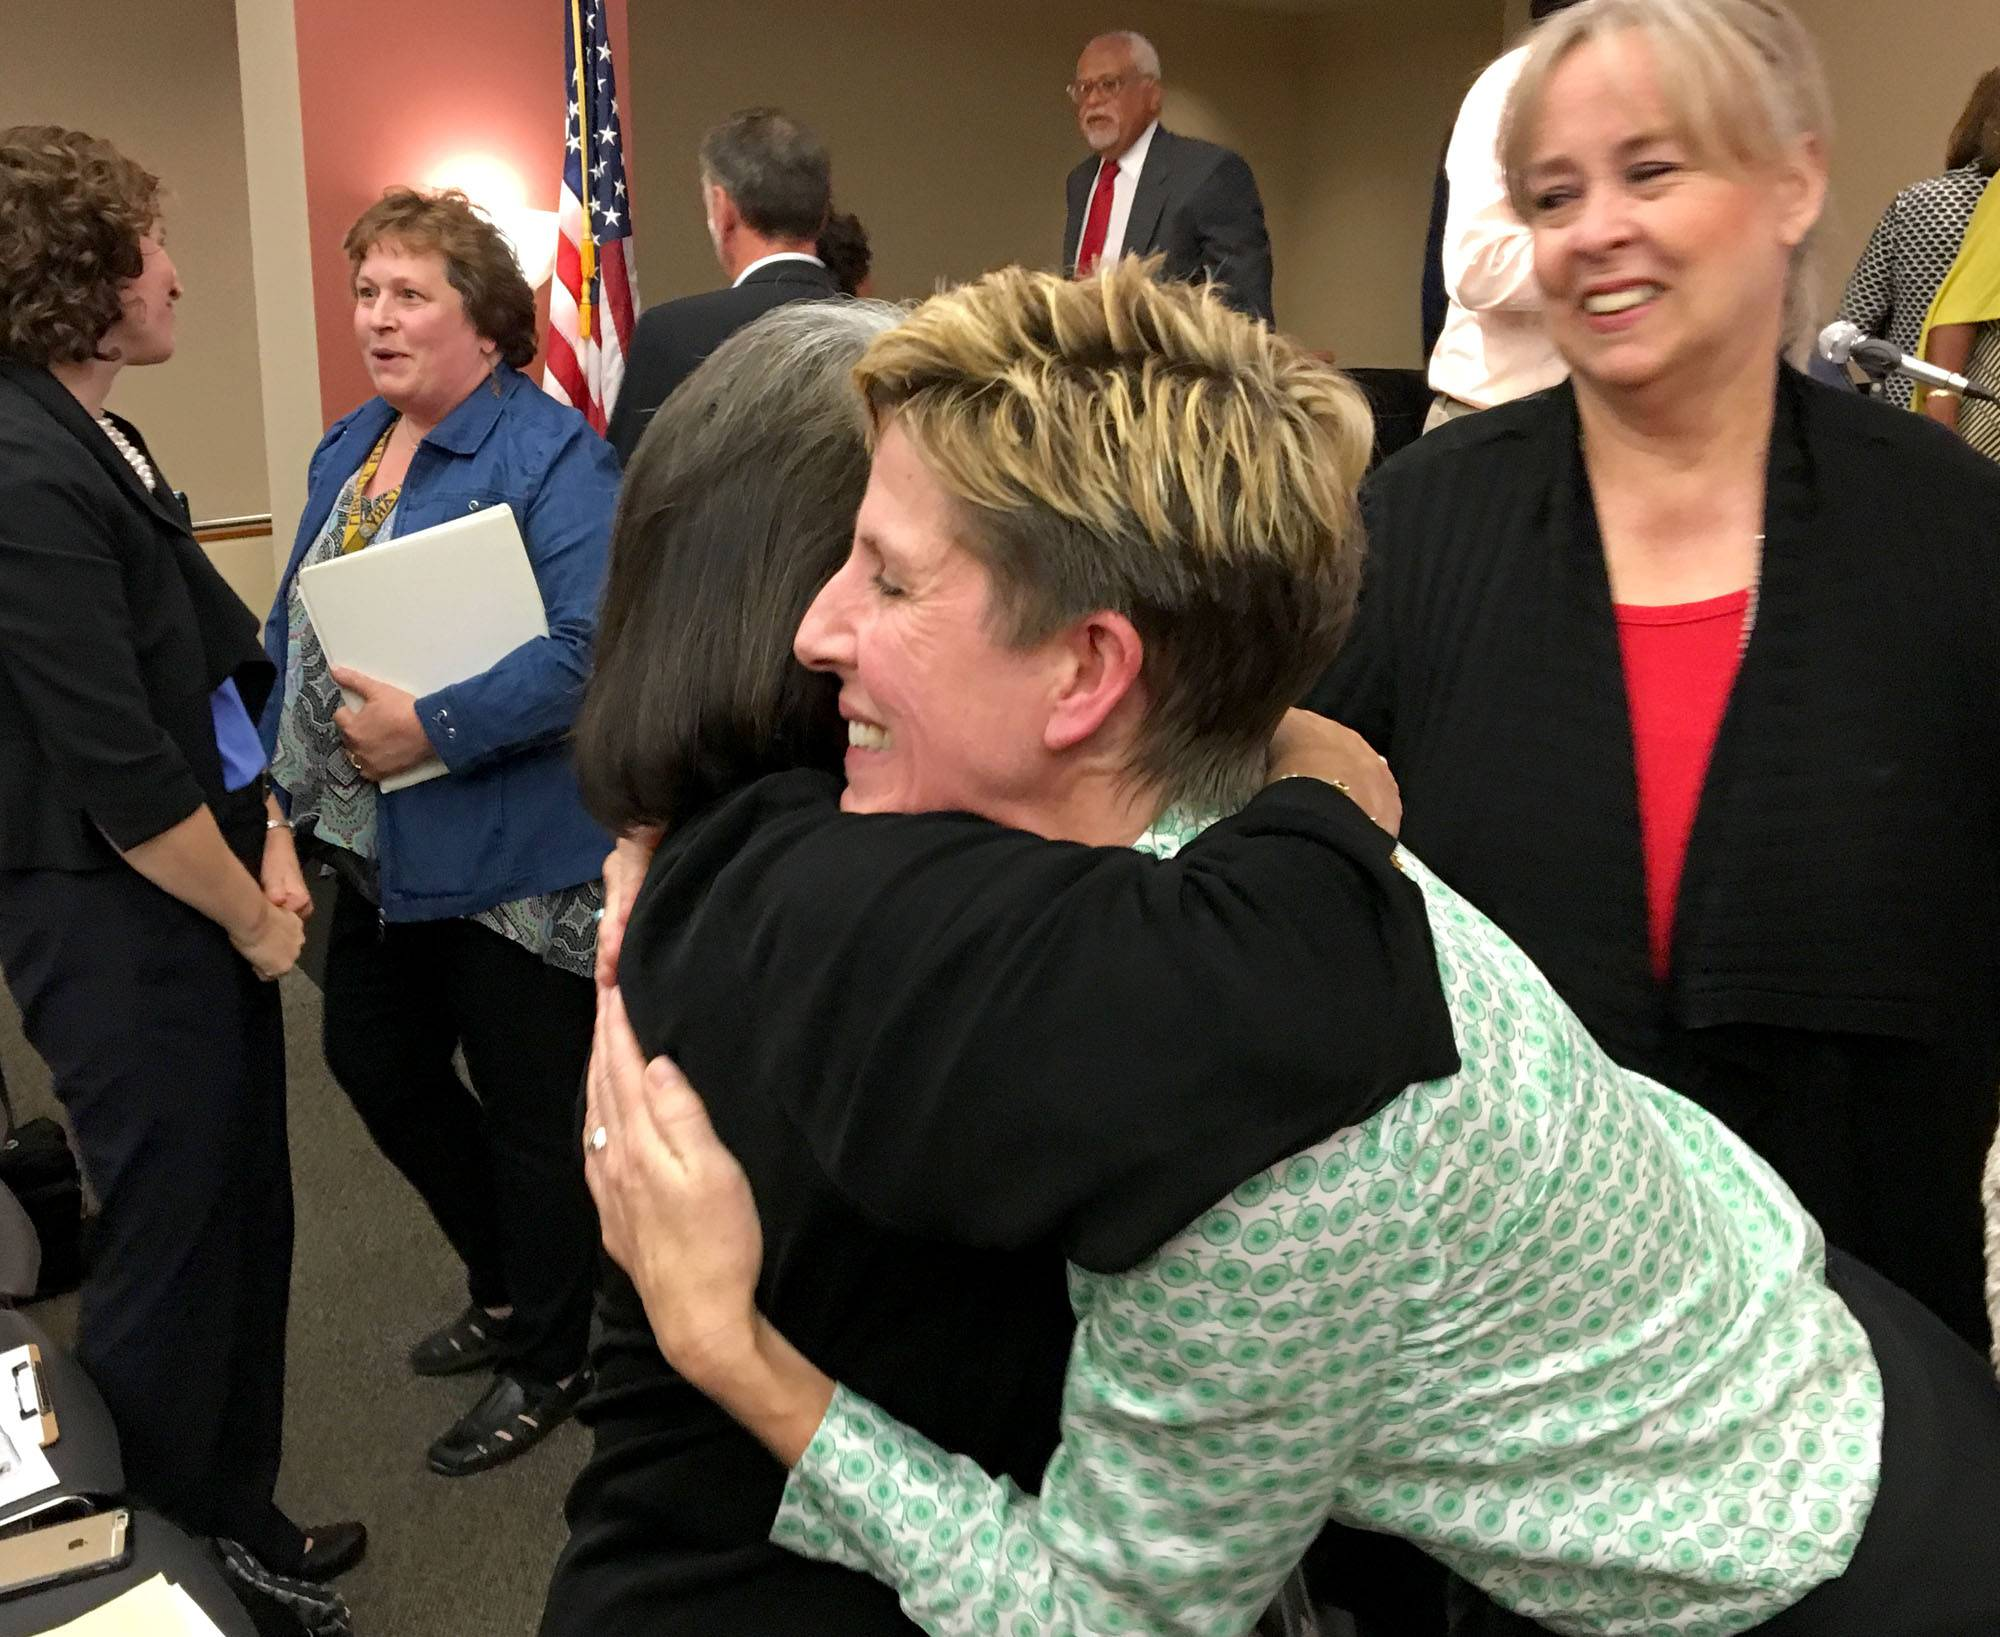 Kerin Kelly, president of the Elgin Charter School Initiative, gets hugs after the group won state approval for a new charter school in Elgin in October.